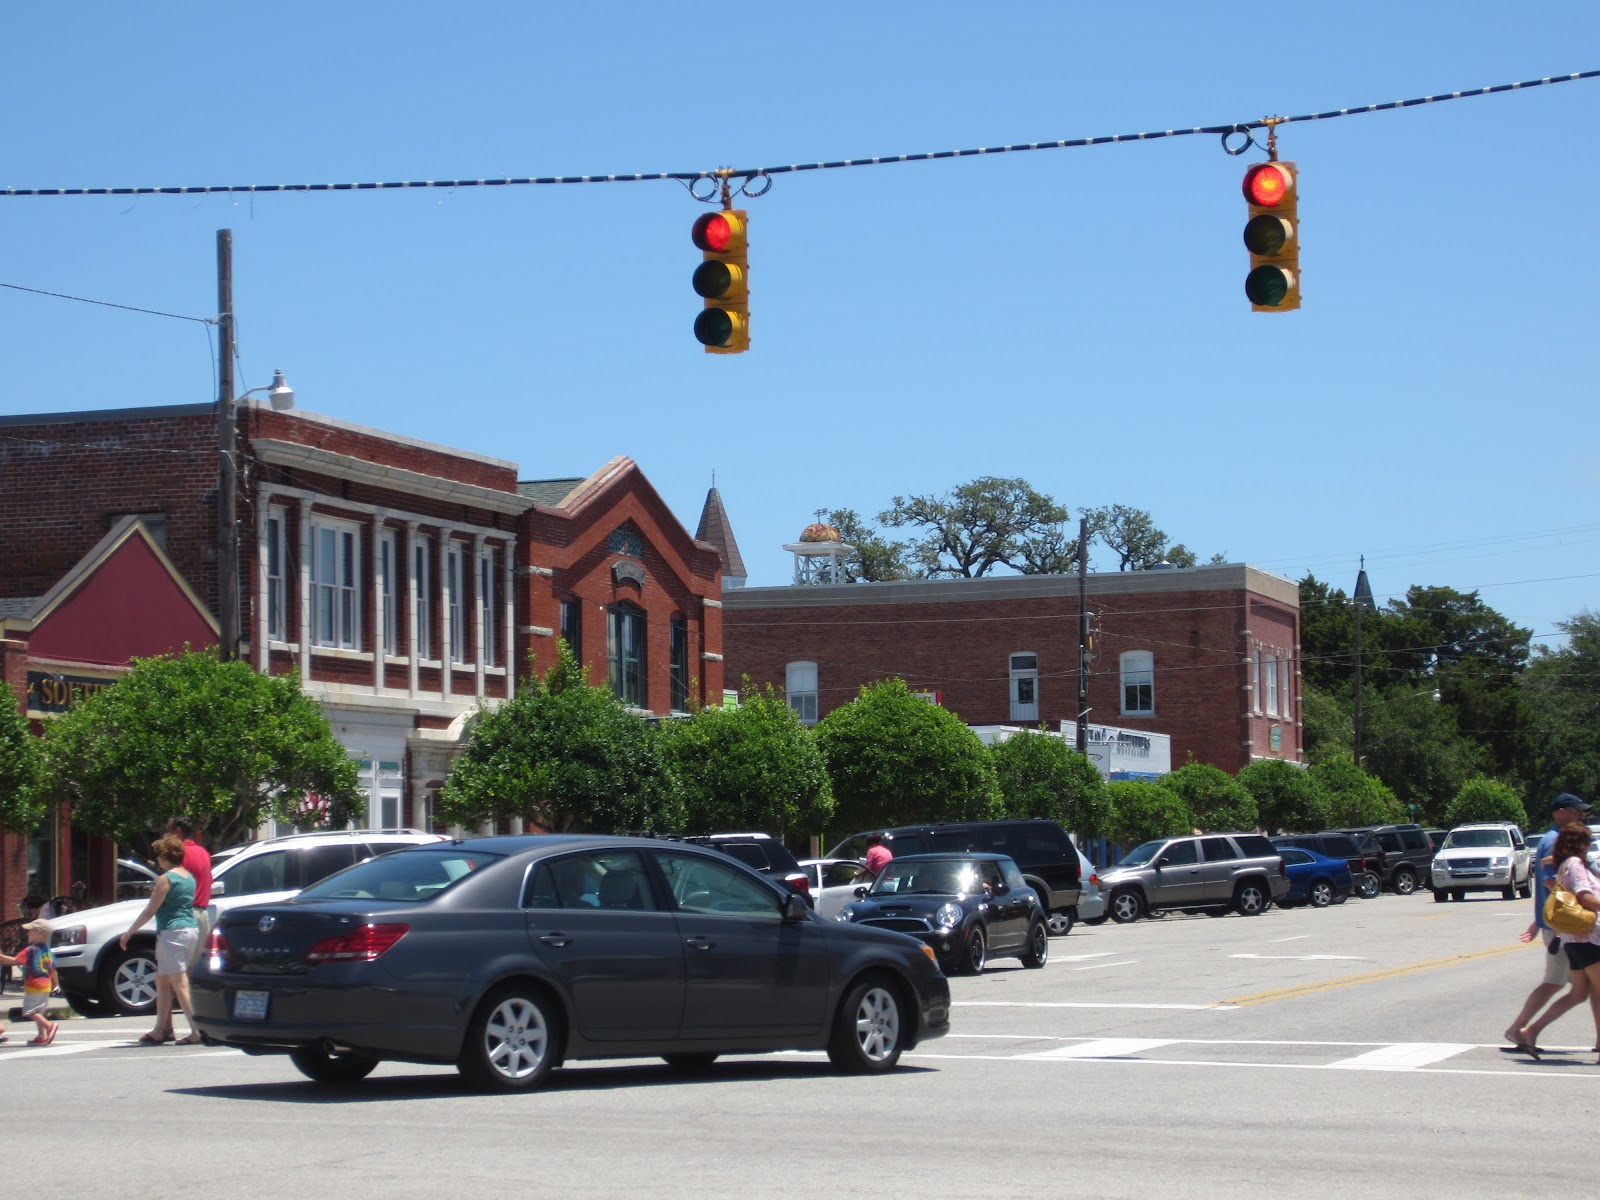 Southport, NC - Such a sweet southern town!